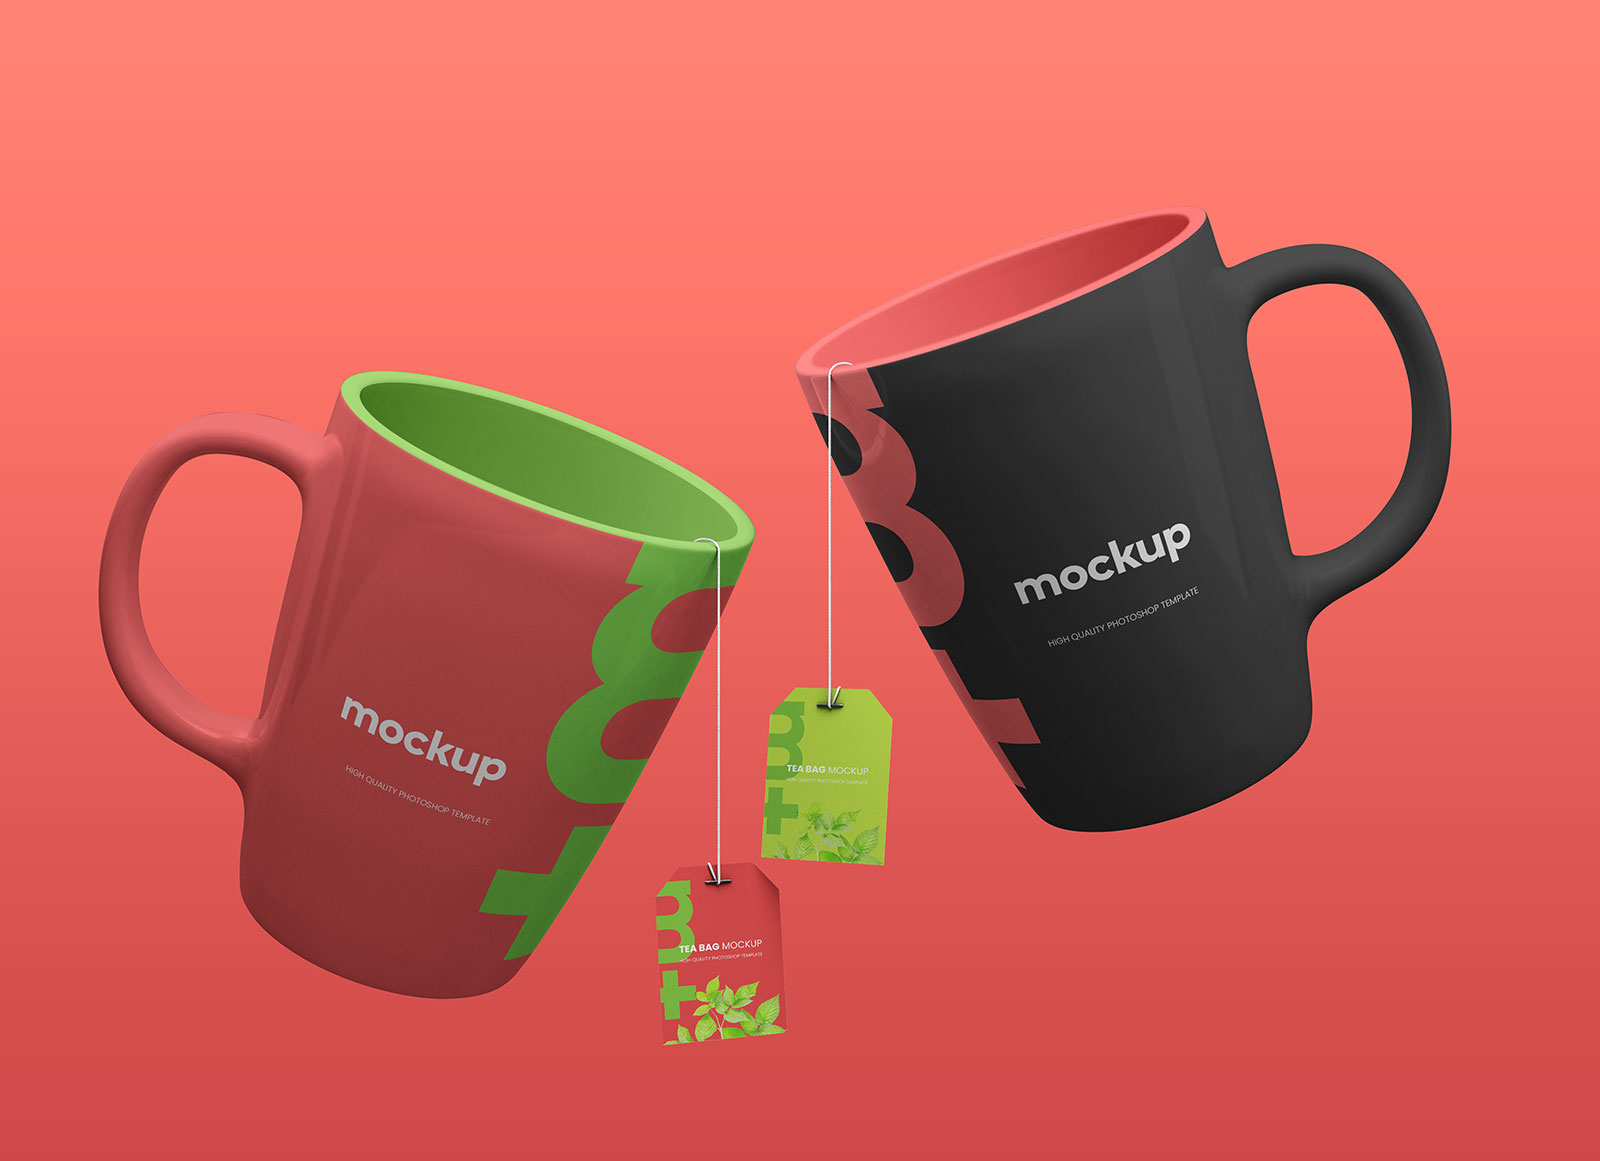 Free-Floating-Ceramic-Mugs-&-Tea-Labels-Mockup-PSD